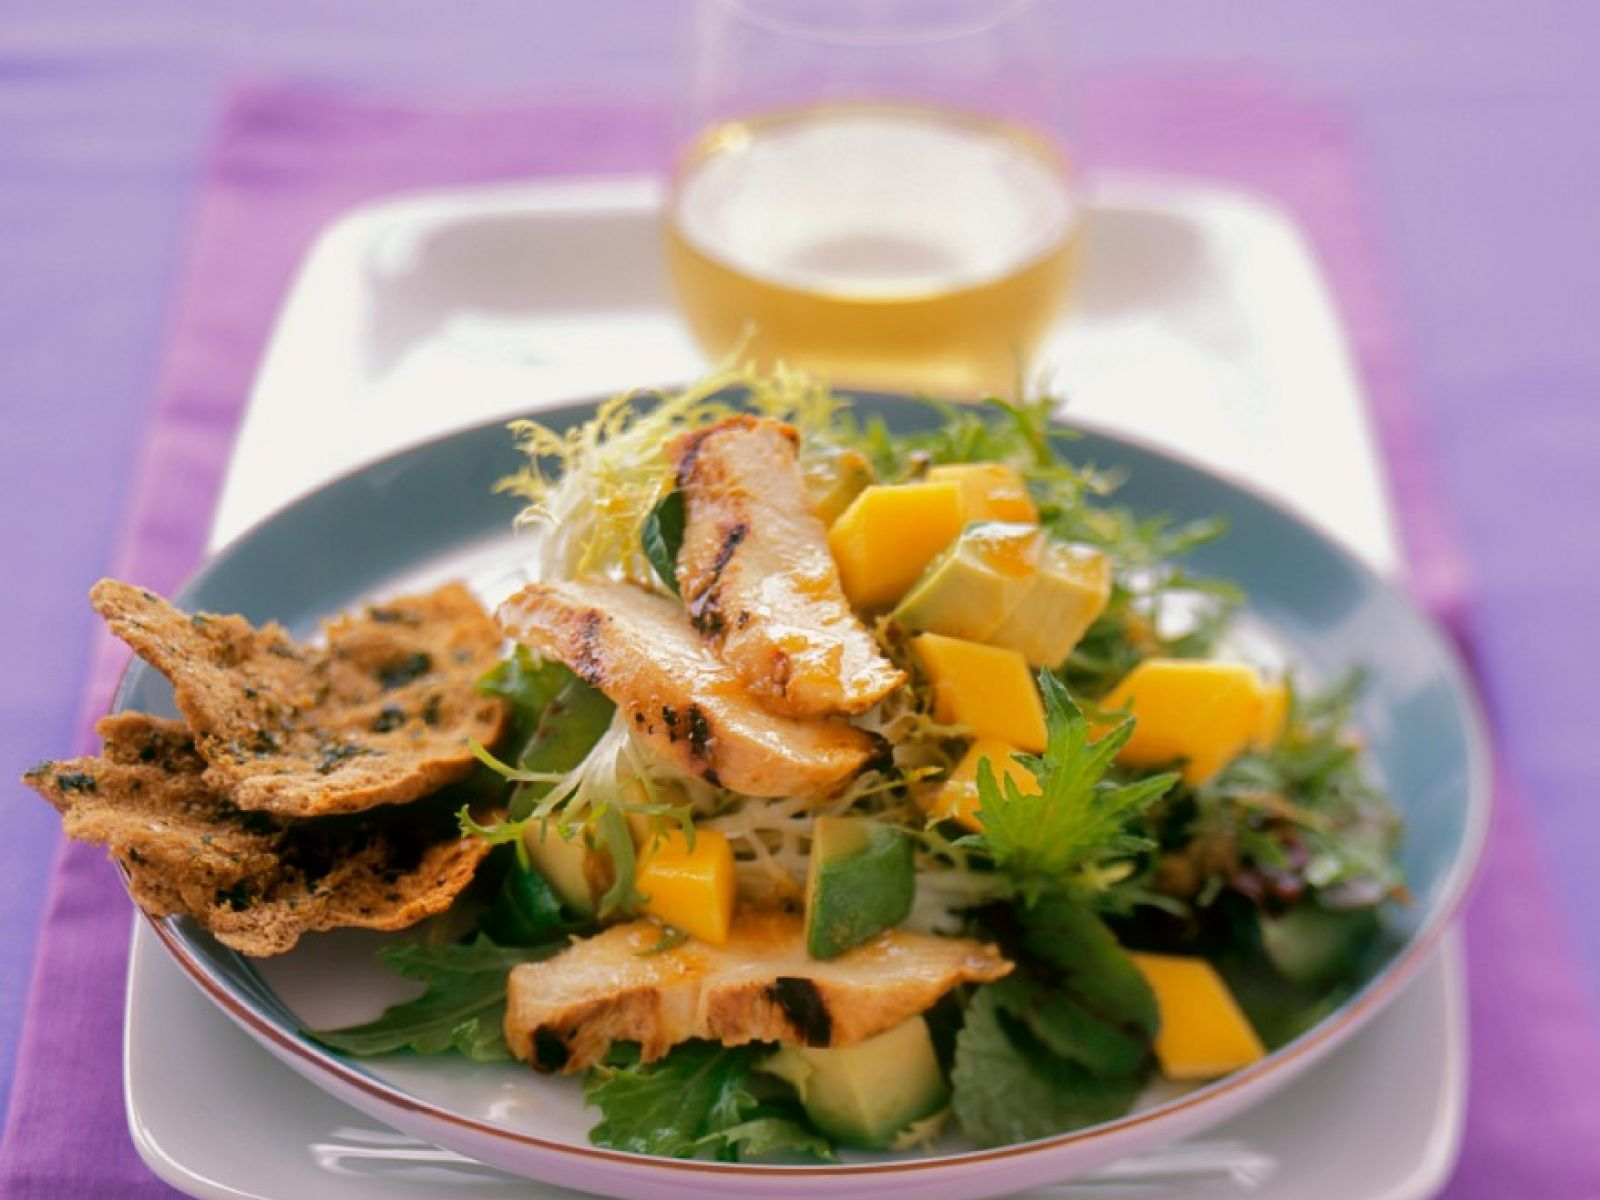 Frisee Mango And Avocado Salad With Grilled Chicken